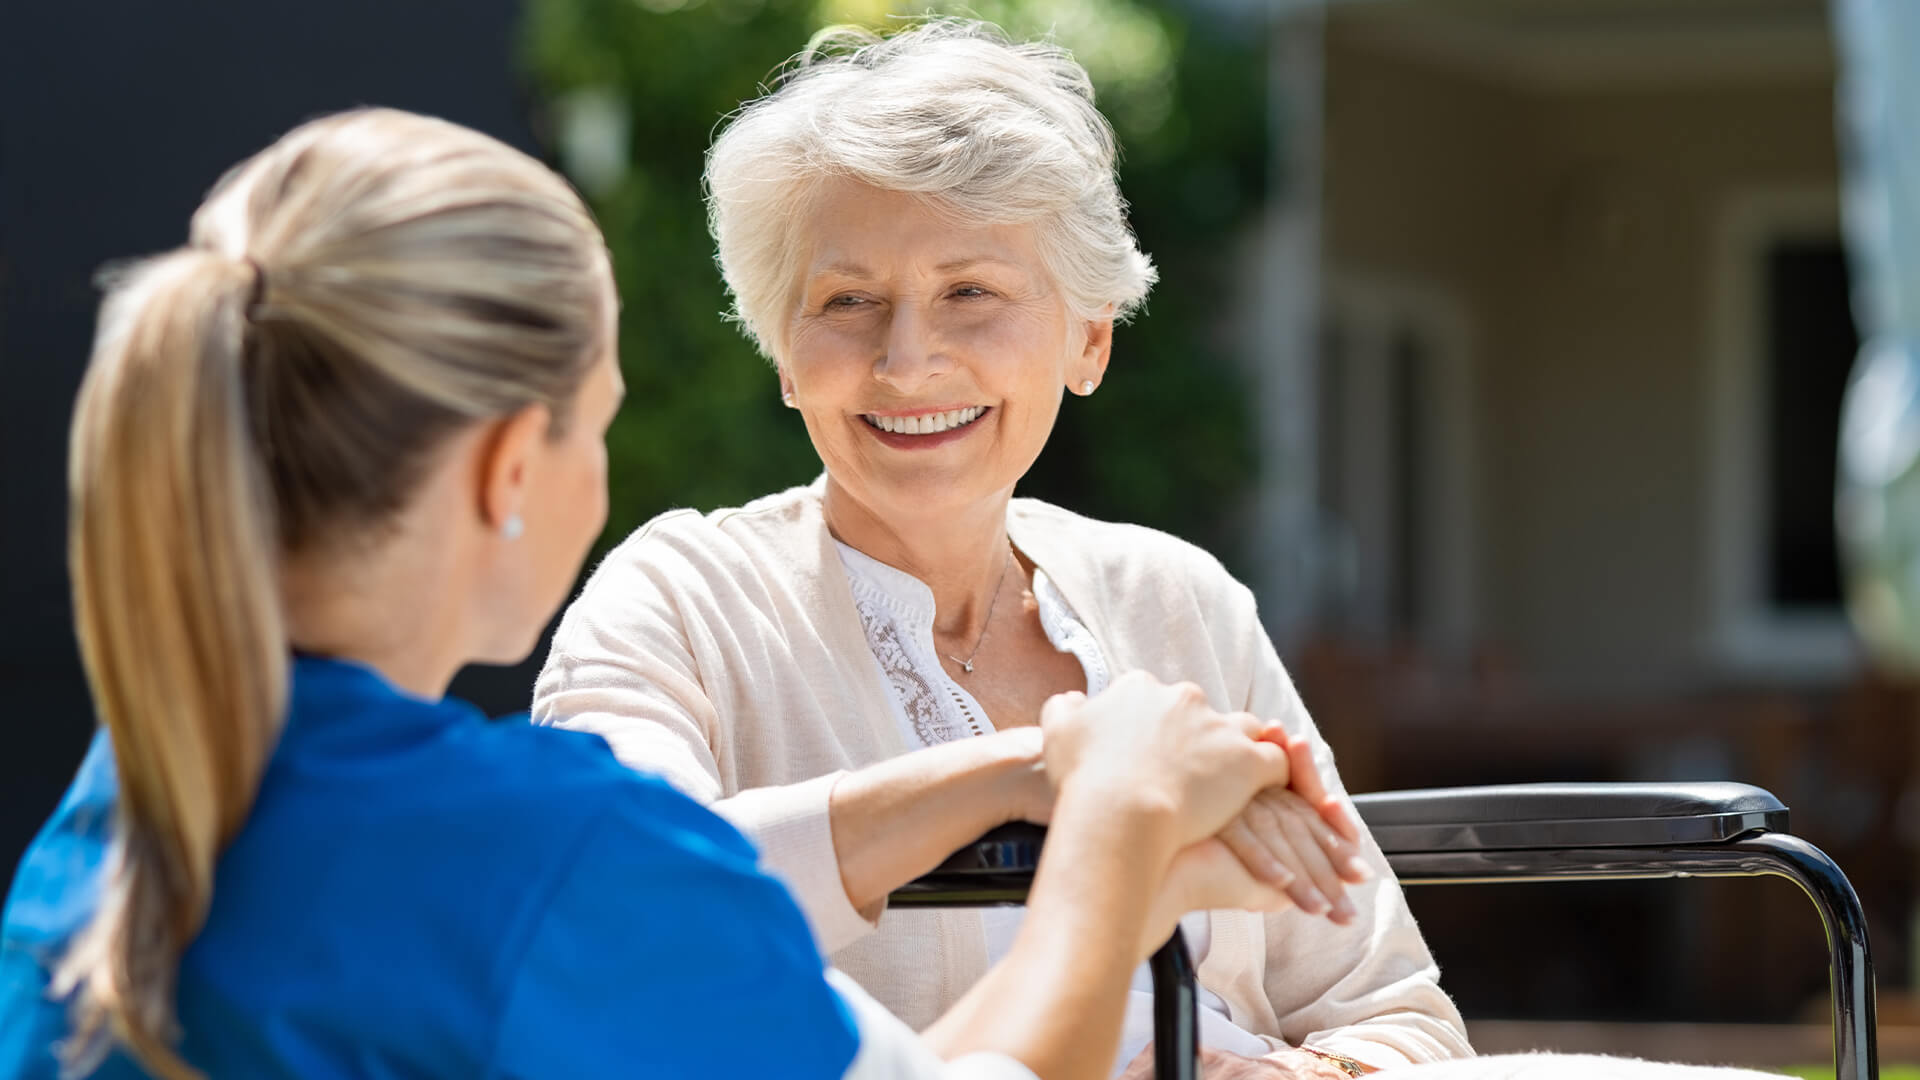 Older woman sitting outside with a younger woman caring for her